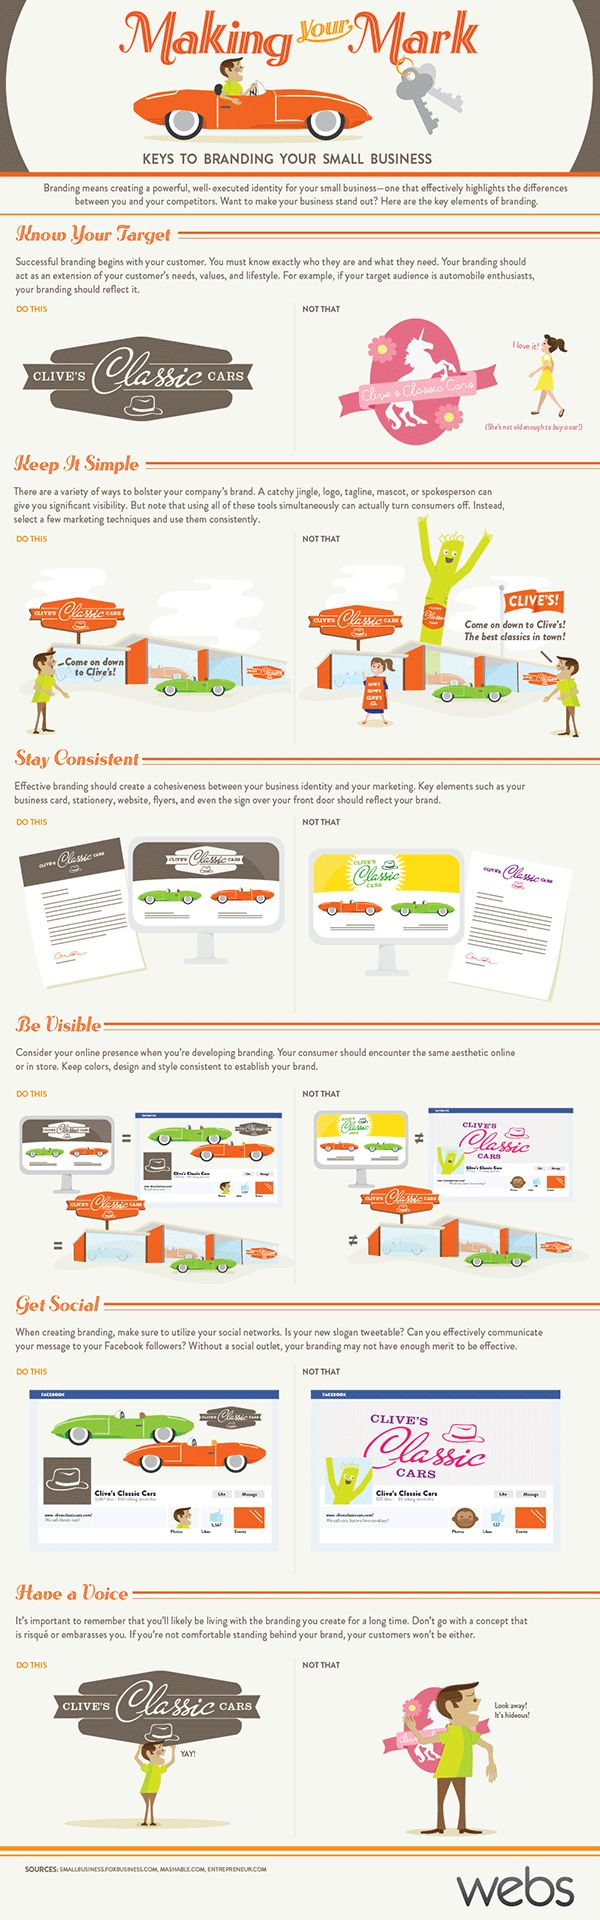 6 Simple Steps to Small Business Branding | Infographic